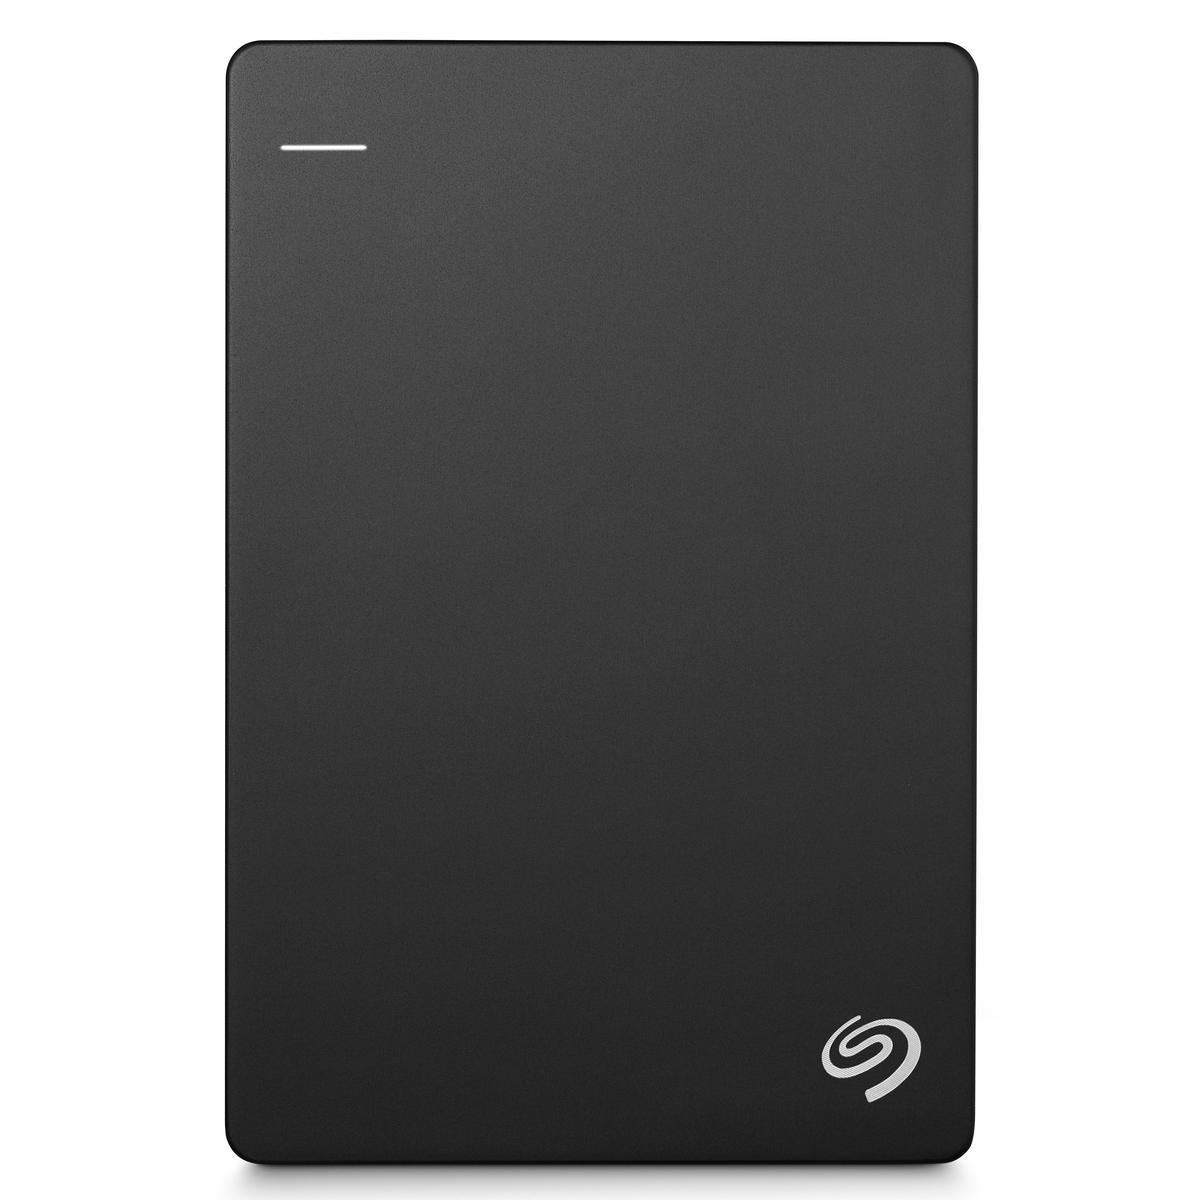 Seagate Backup Plus Portable 4 TB External Hard Drive